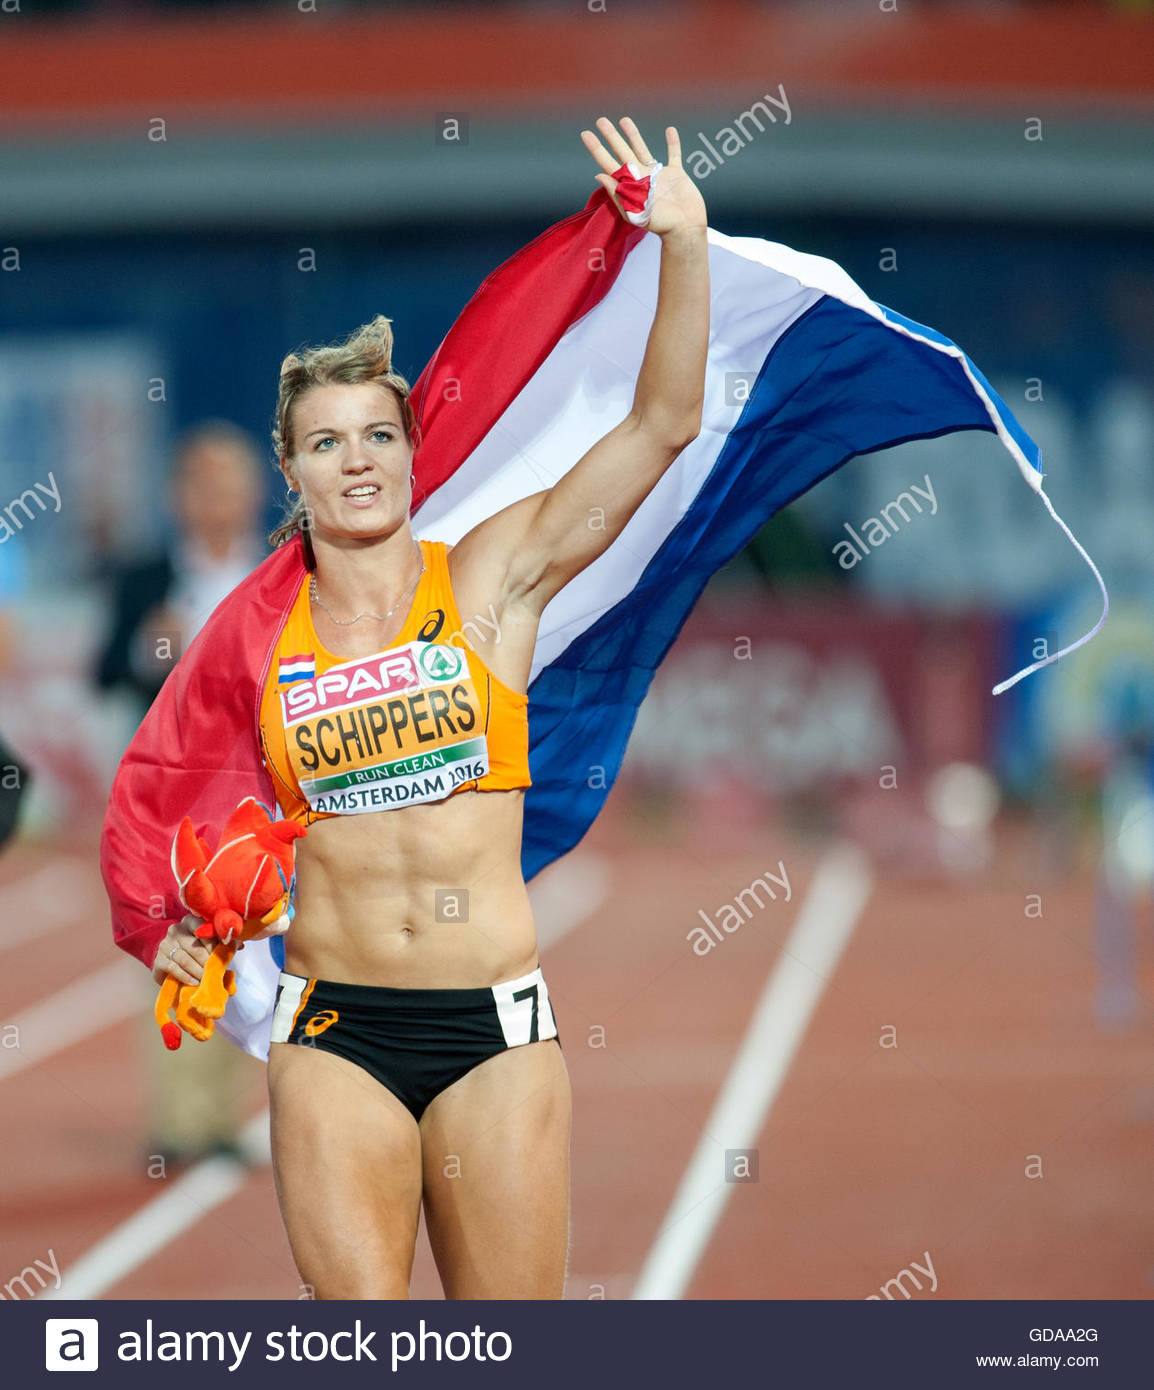 amsterdam-the-netherlands-8th-july-2016-the-athletics-european-championships-GDAA2G.jpg